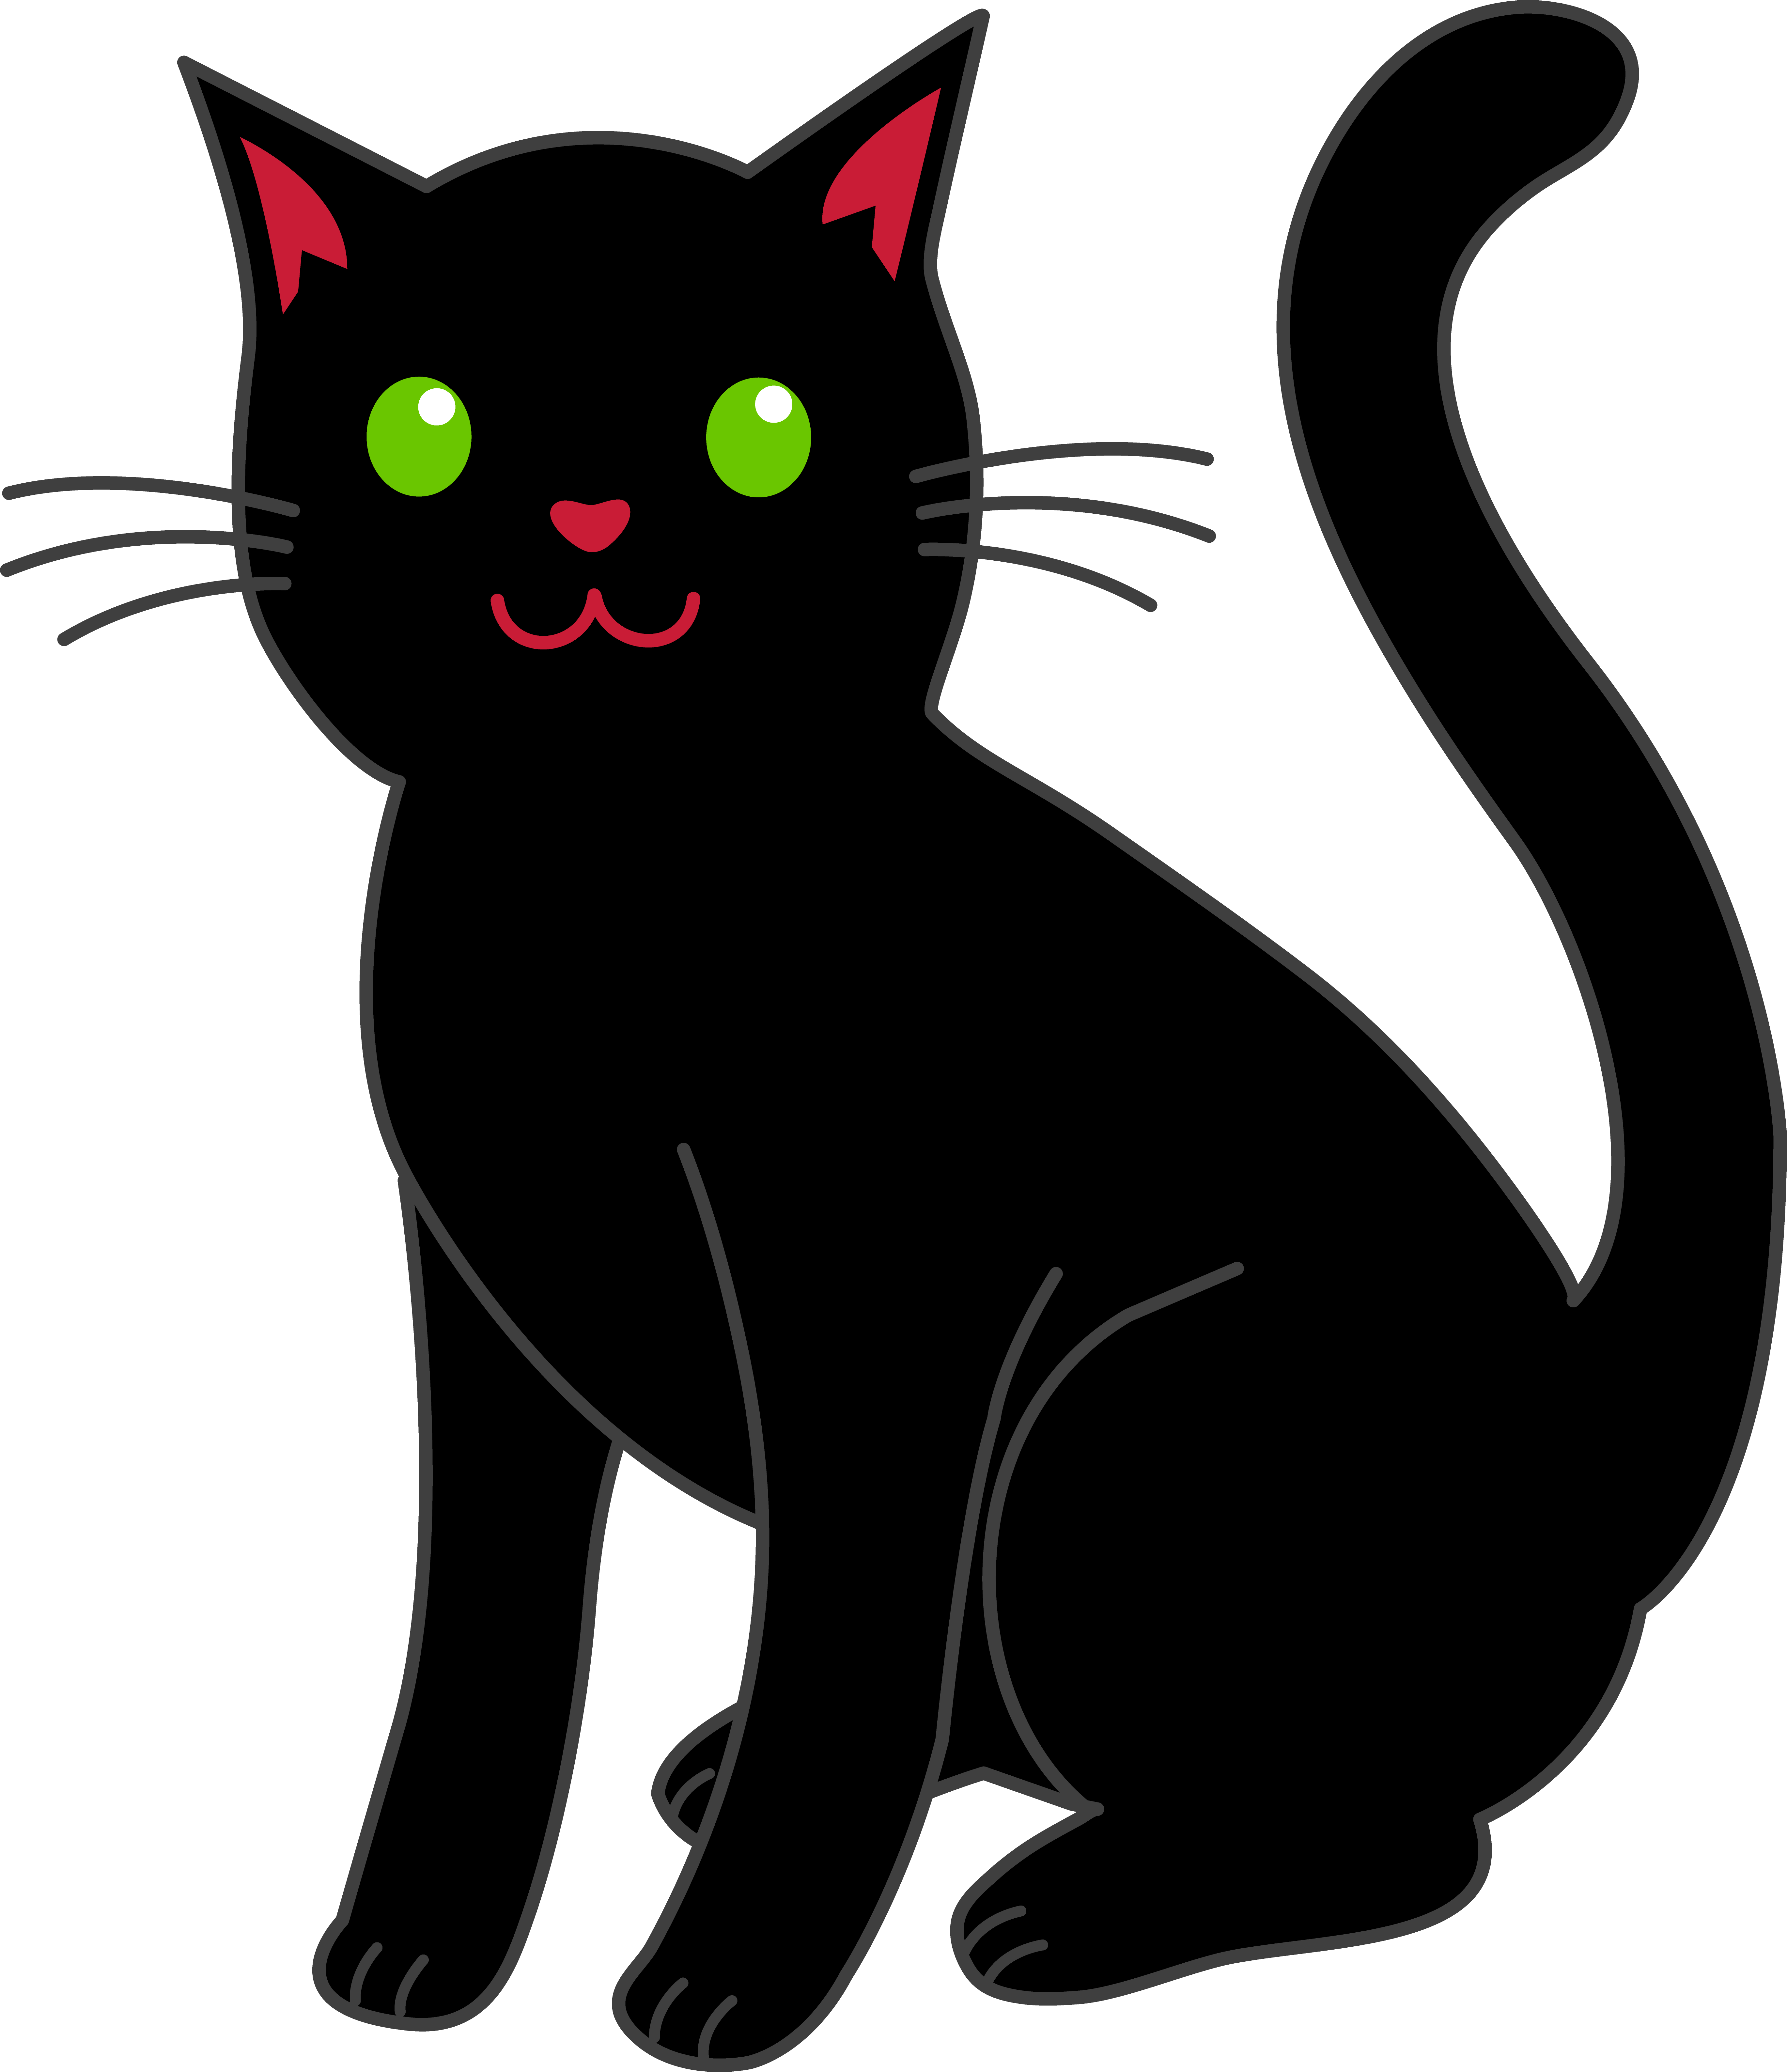 Black Cat Cartoon - Cliparts.co